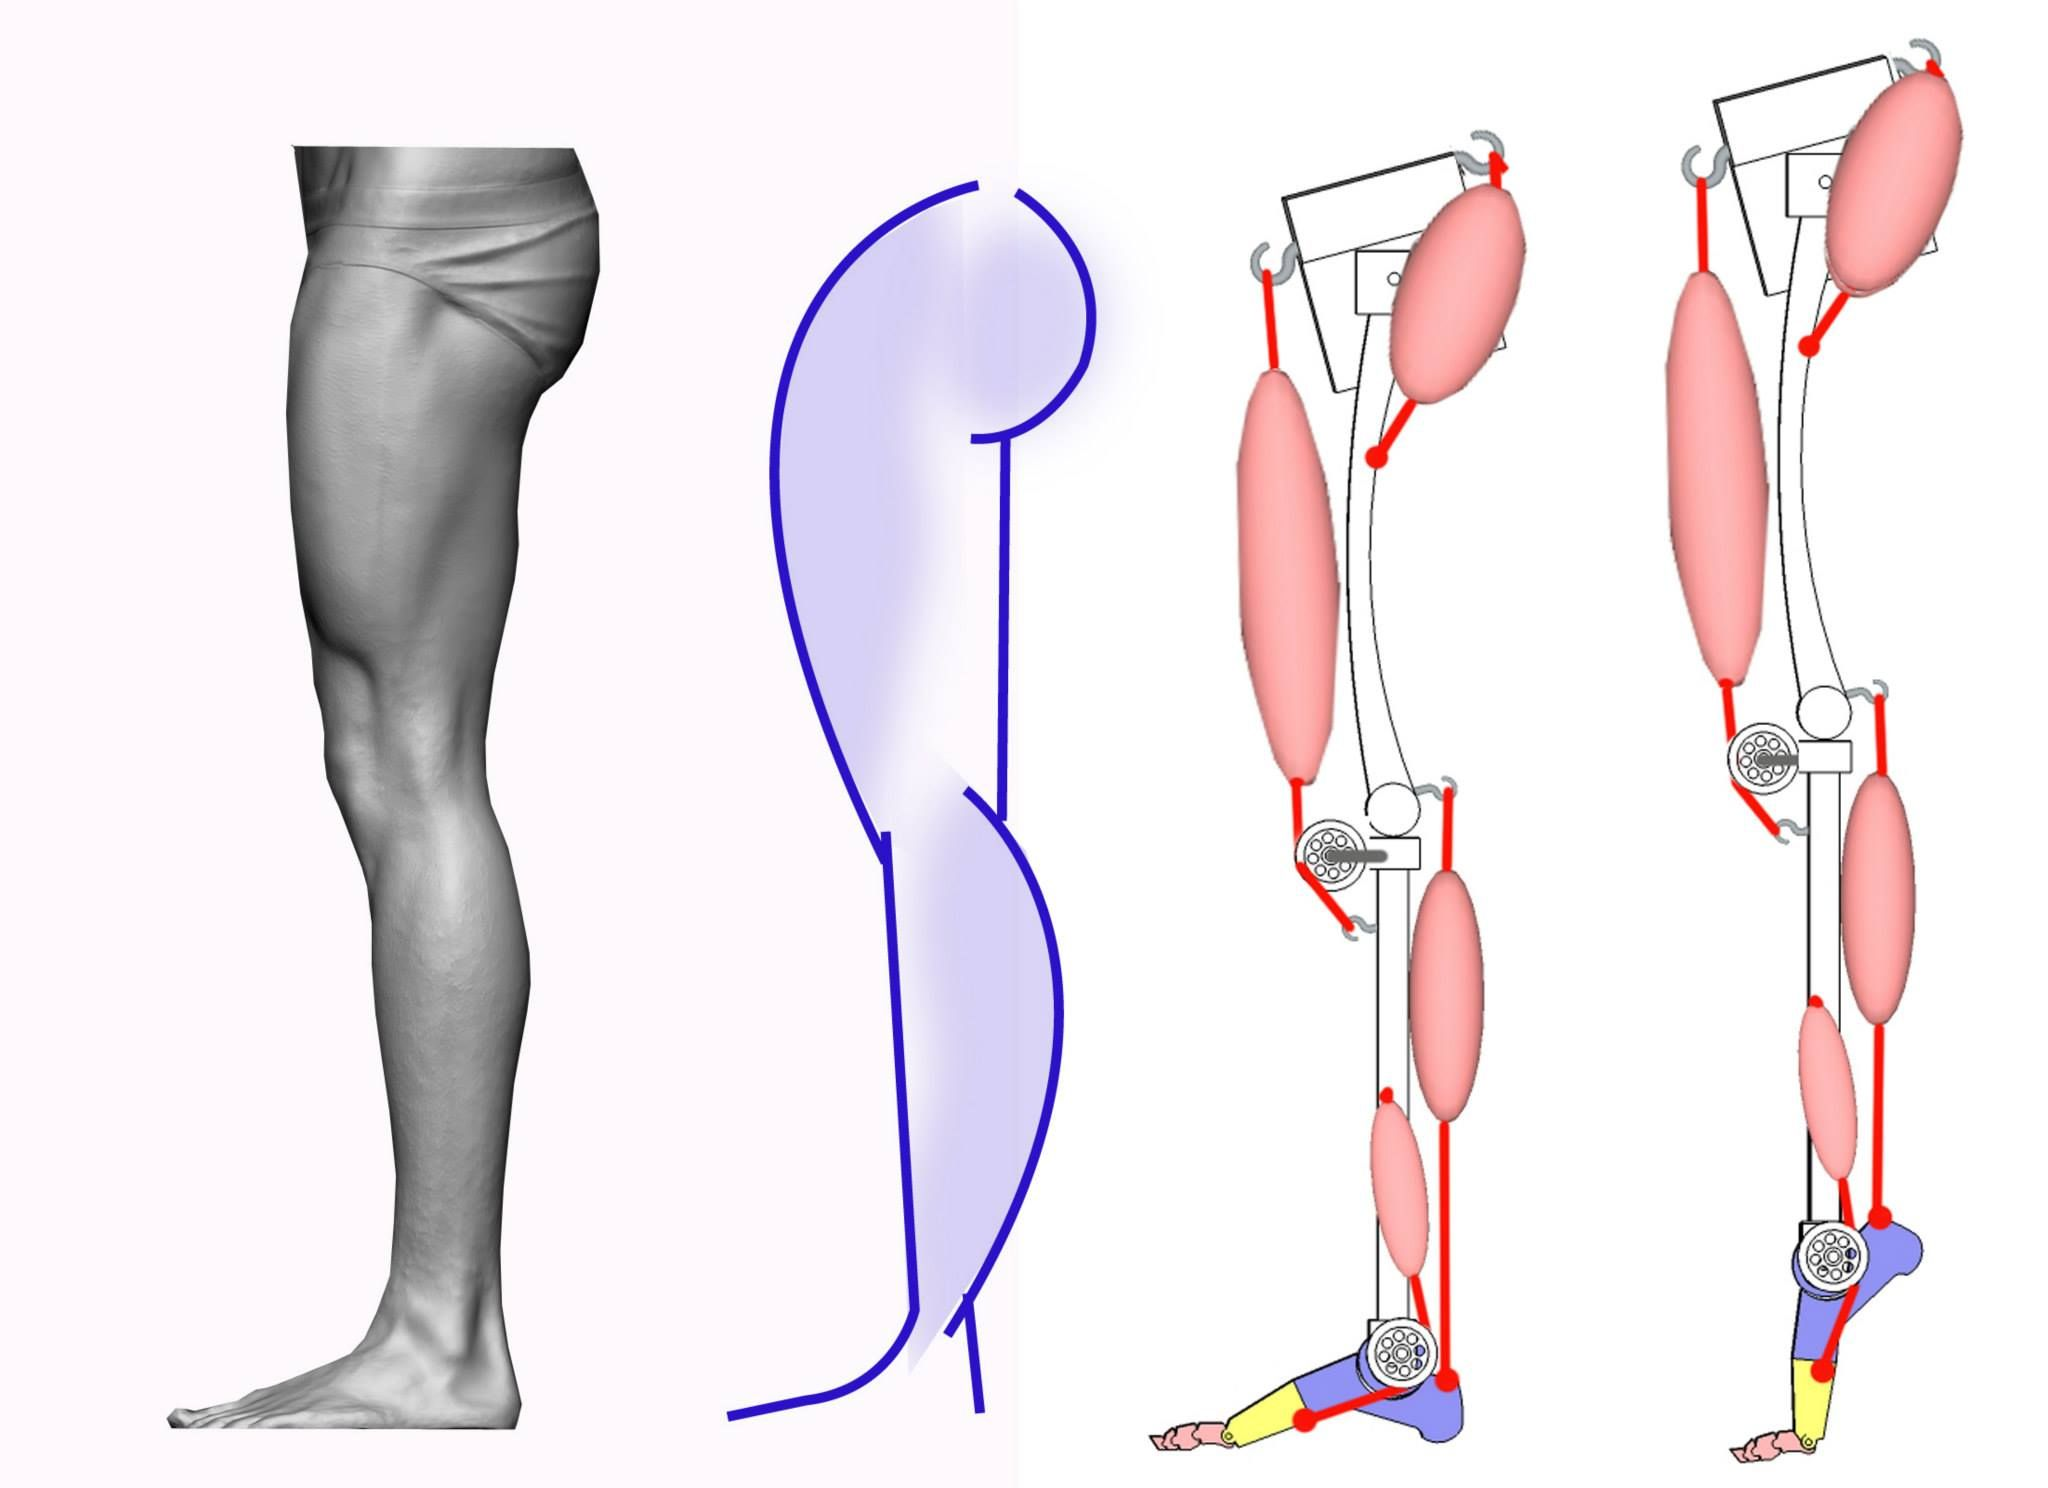 Anatomy 4 sculptors - Mechanics of the main muscle groups that ...